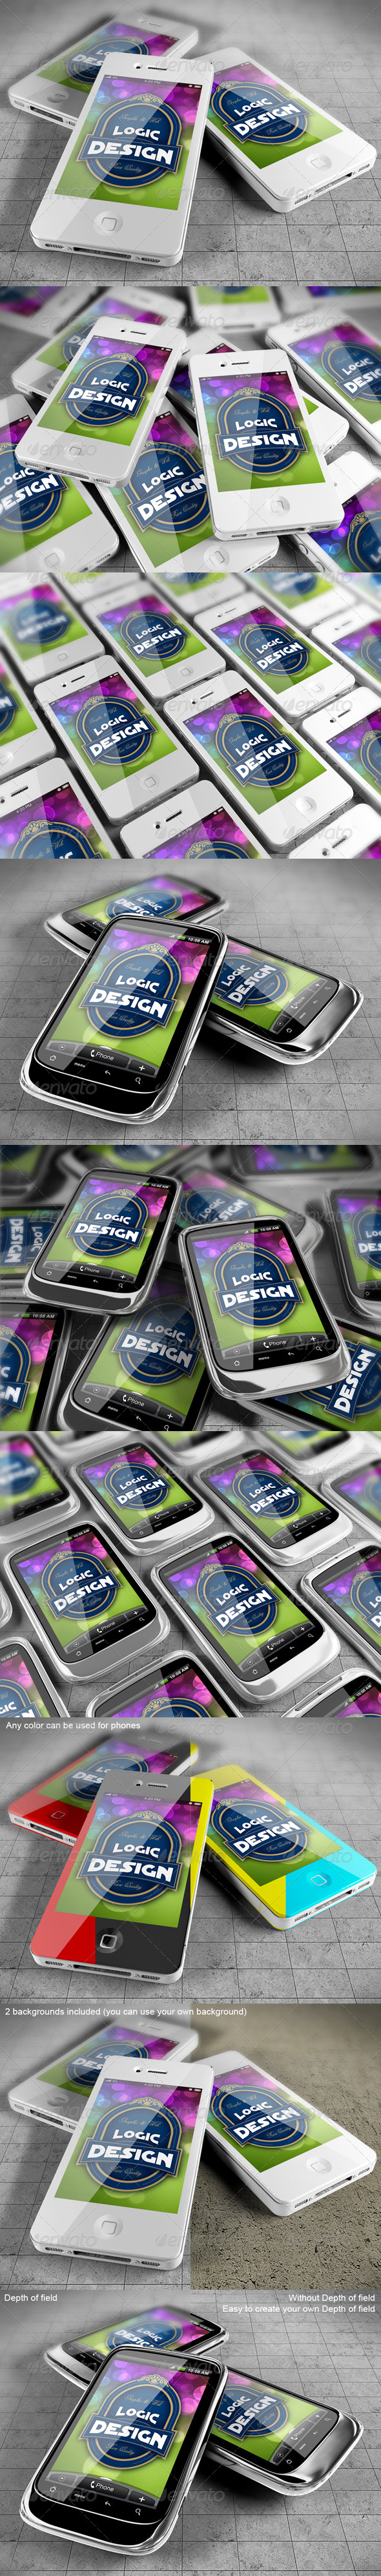 Smart Phones Mock Up - Mobile Displays